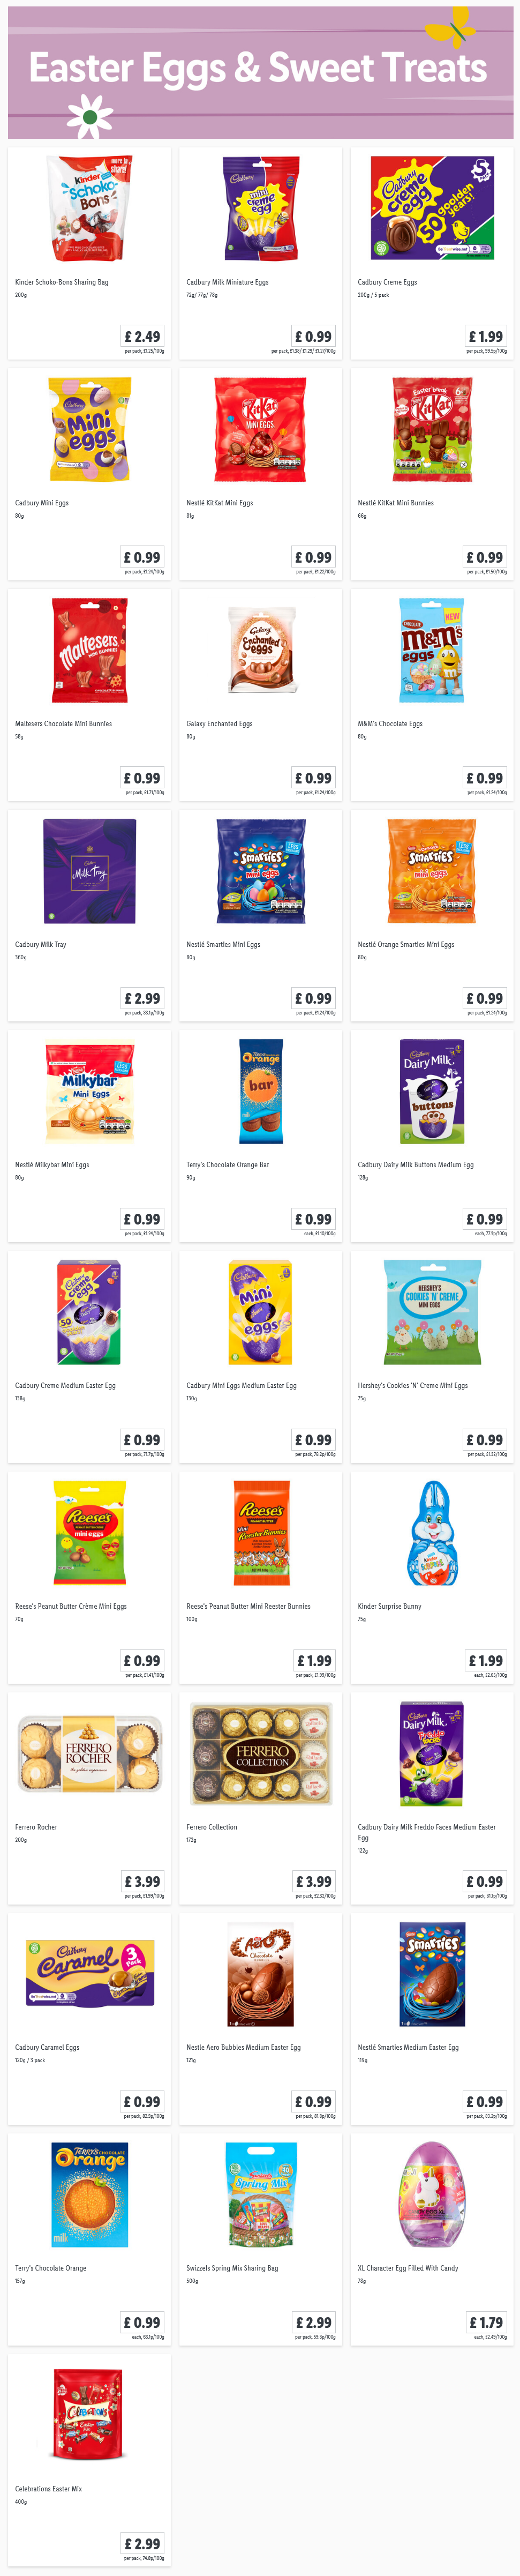 LIDL Offers this Thursday From 25th February 2021 LIDL Easter Eggs Sweet Treats